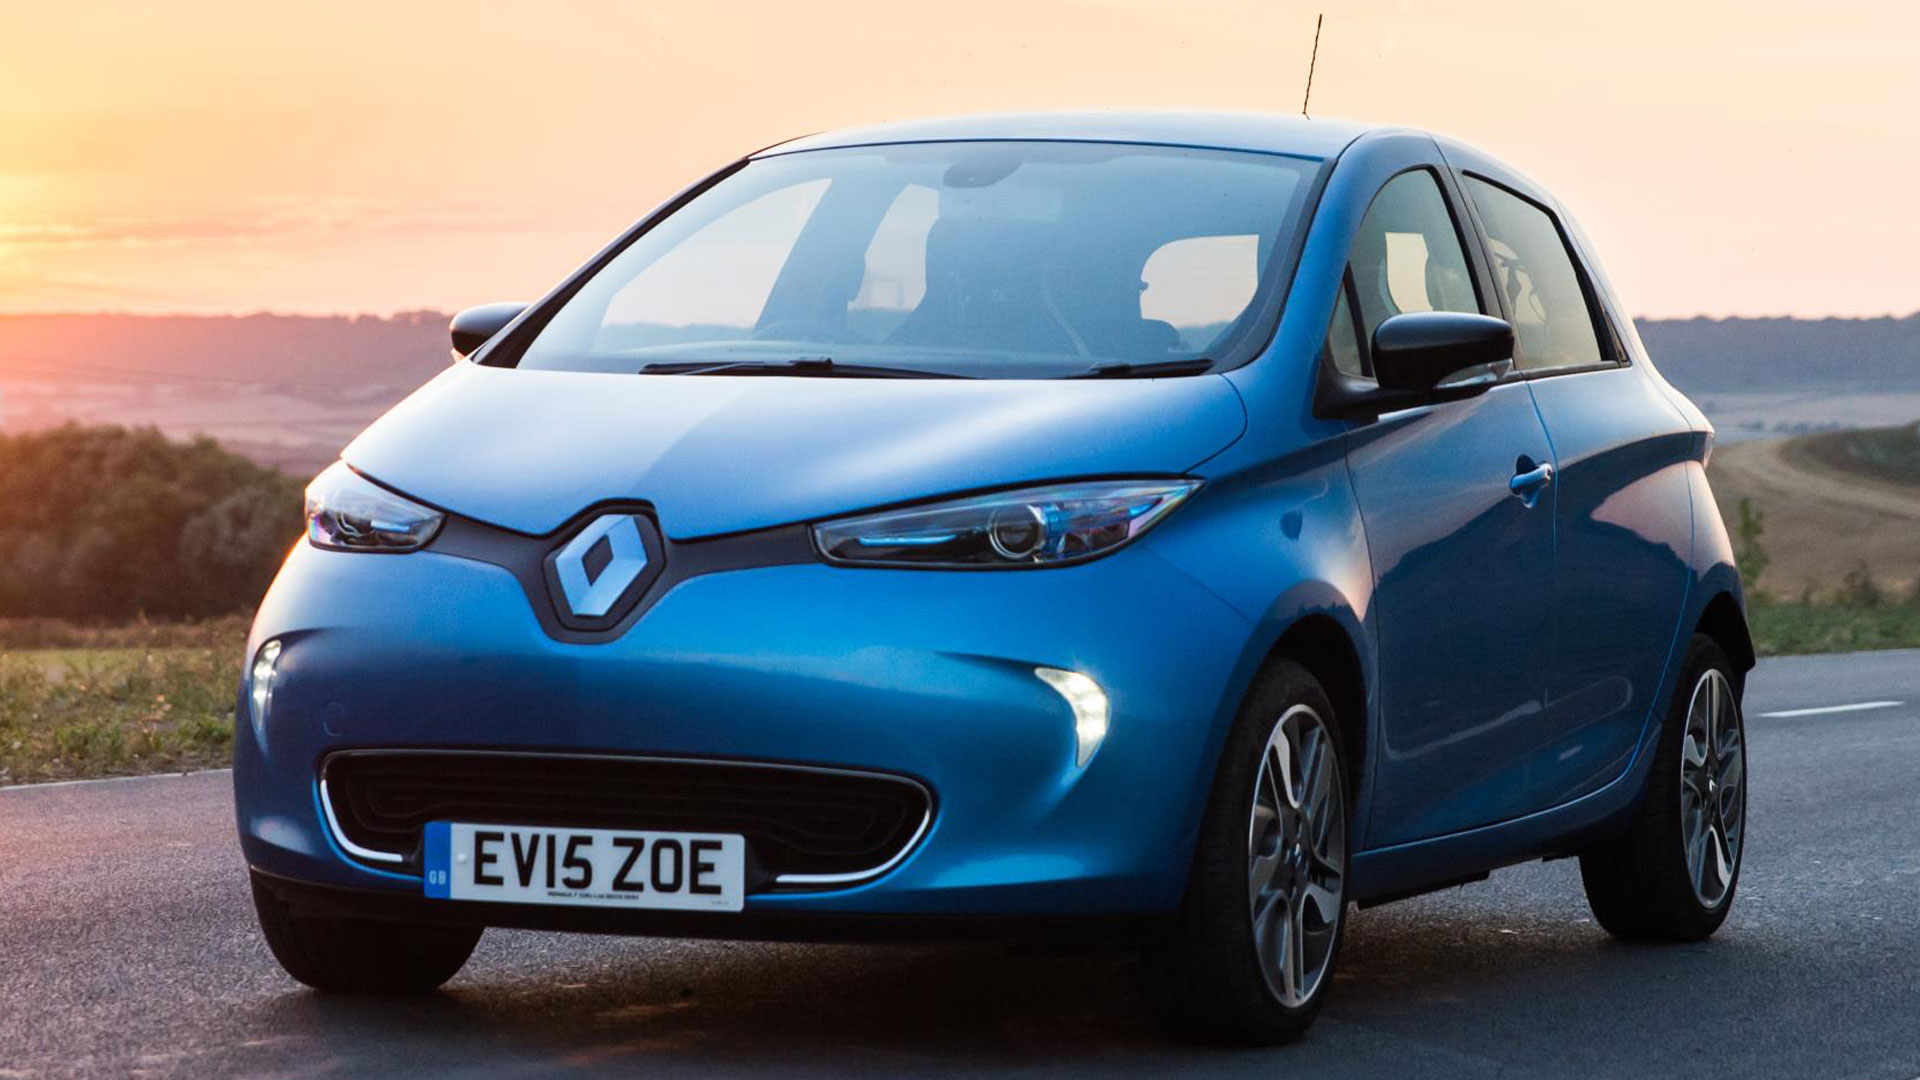 39fc70ee1f52 Spark of interest  used electric car price soars by 50%